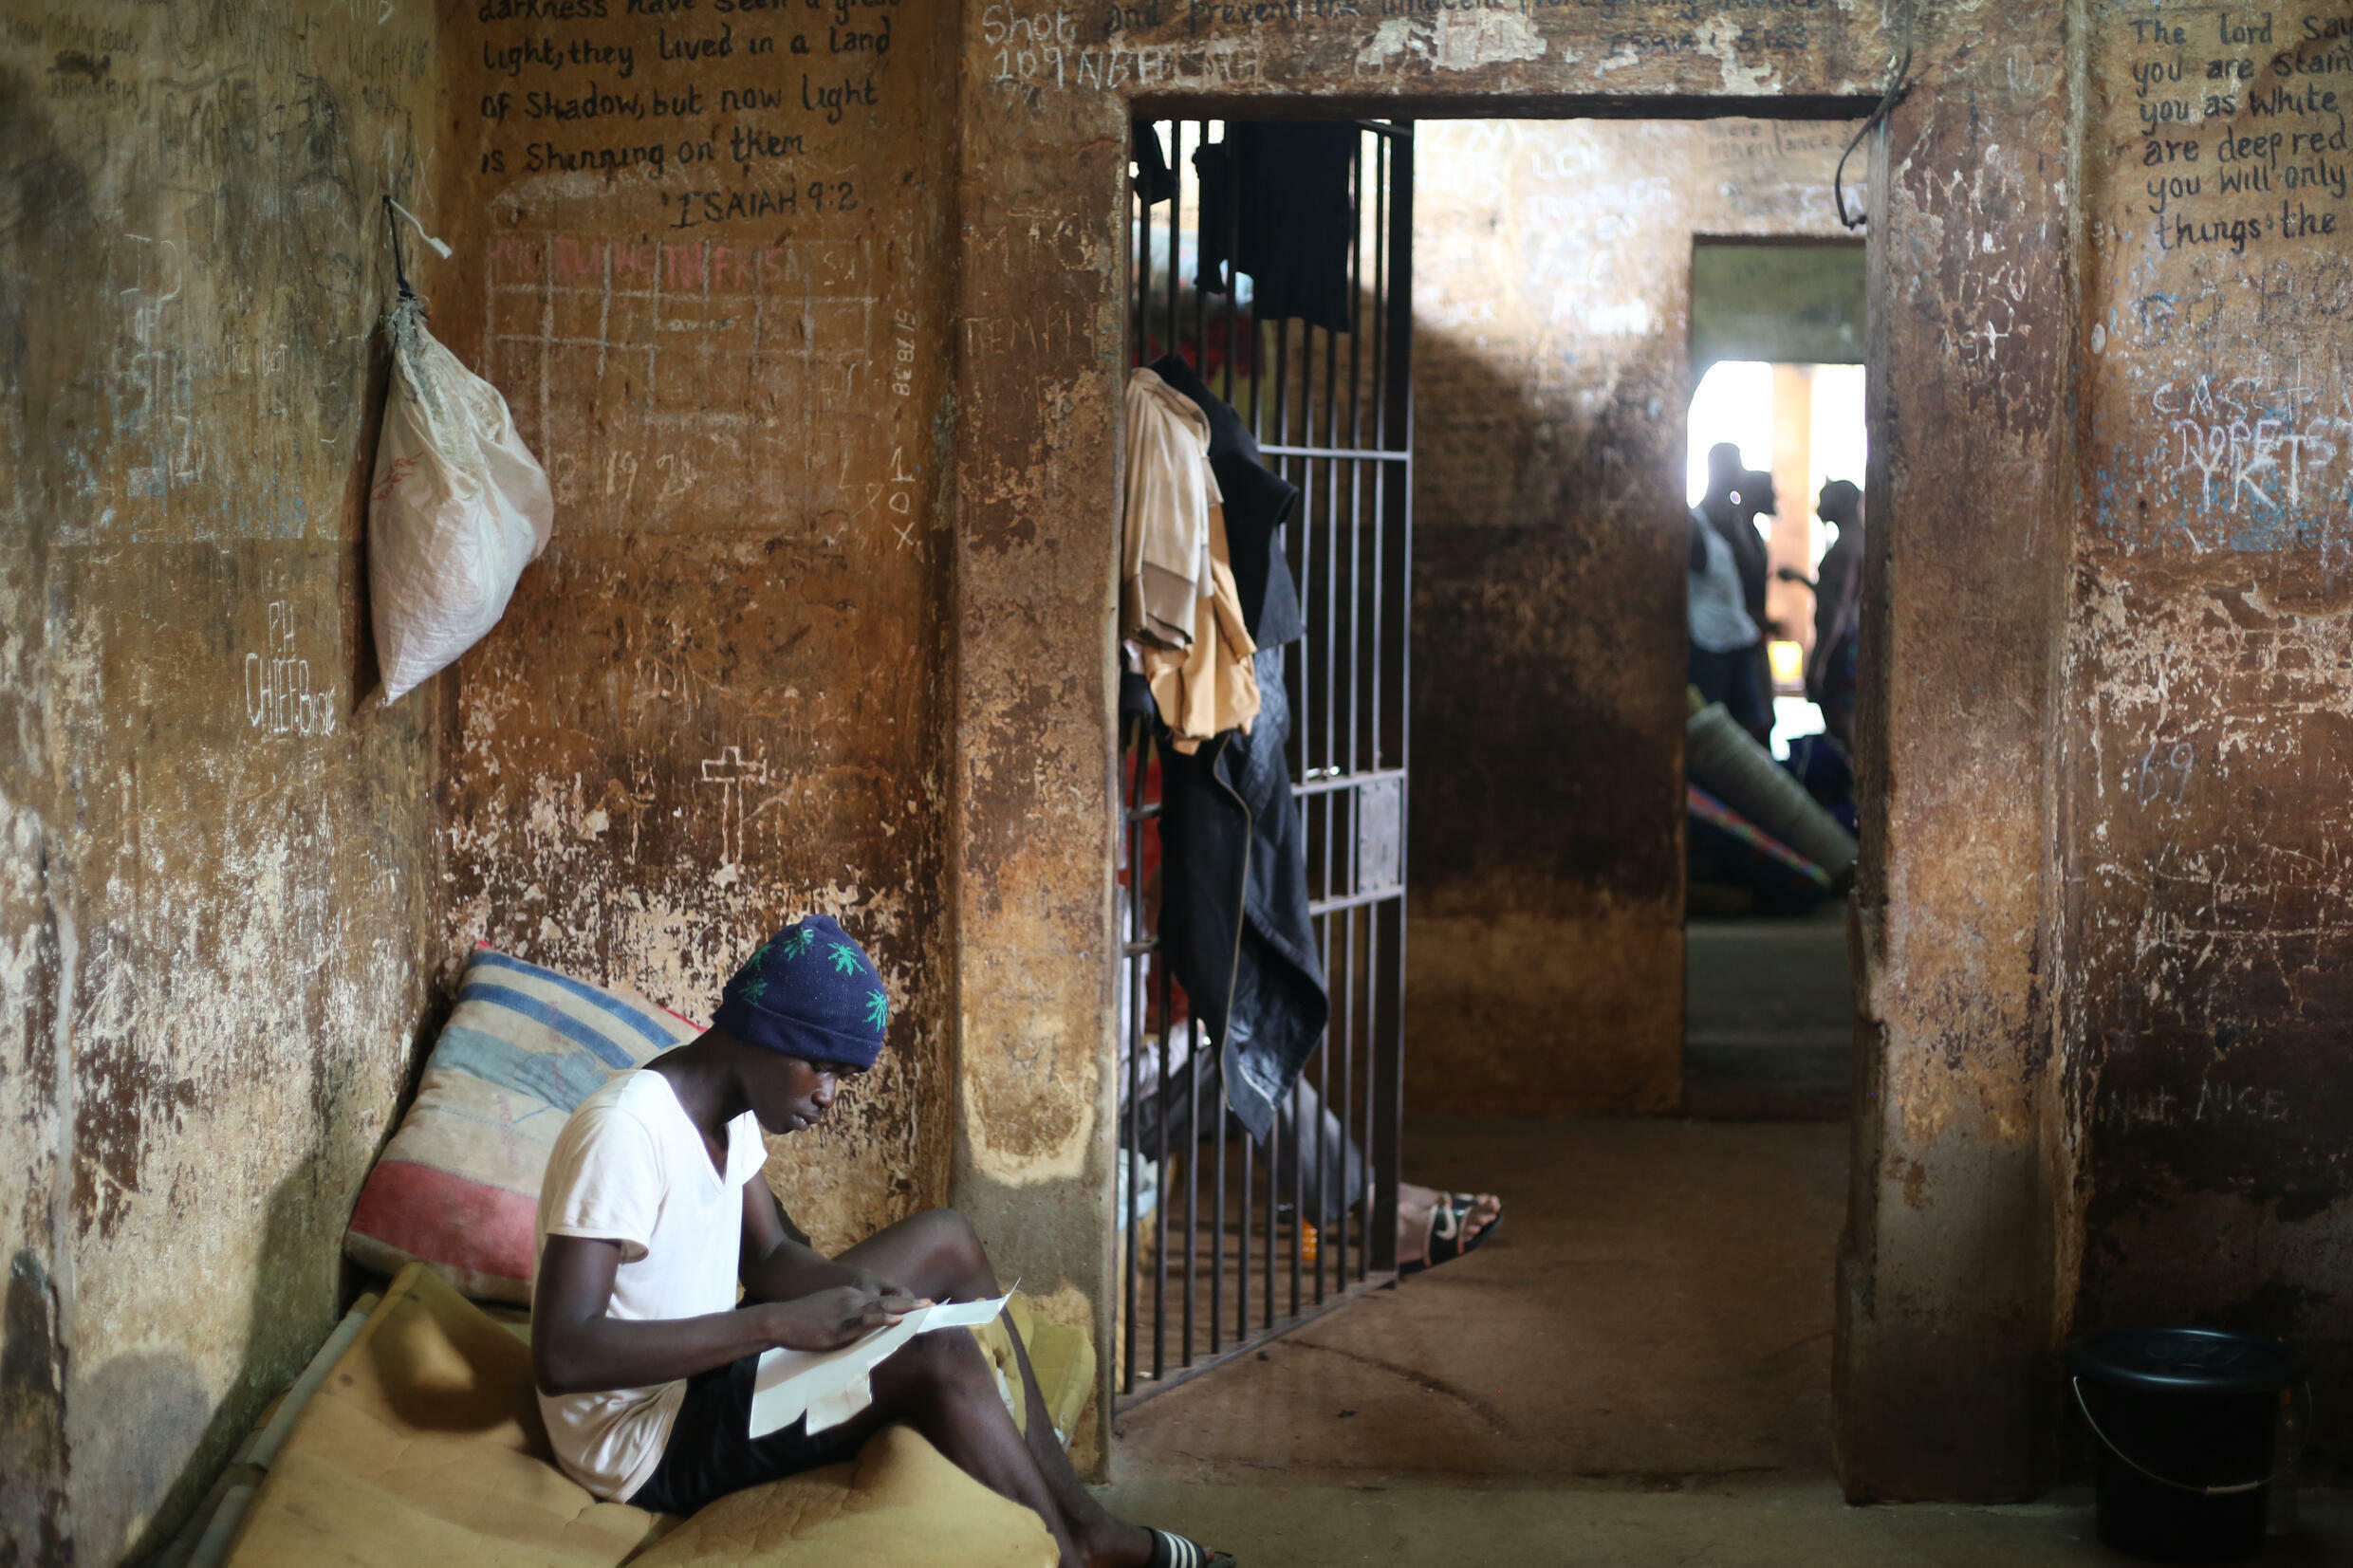 Sierra Leone had not executed anyone since 1998 but still had capital punishment on its books